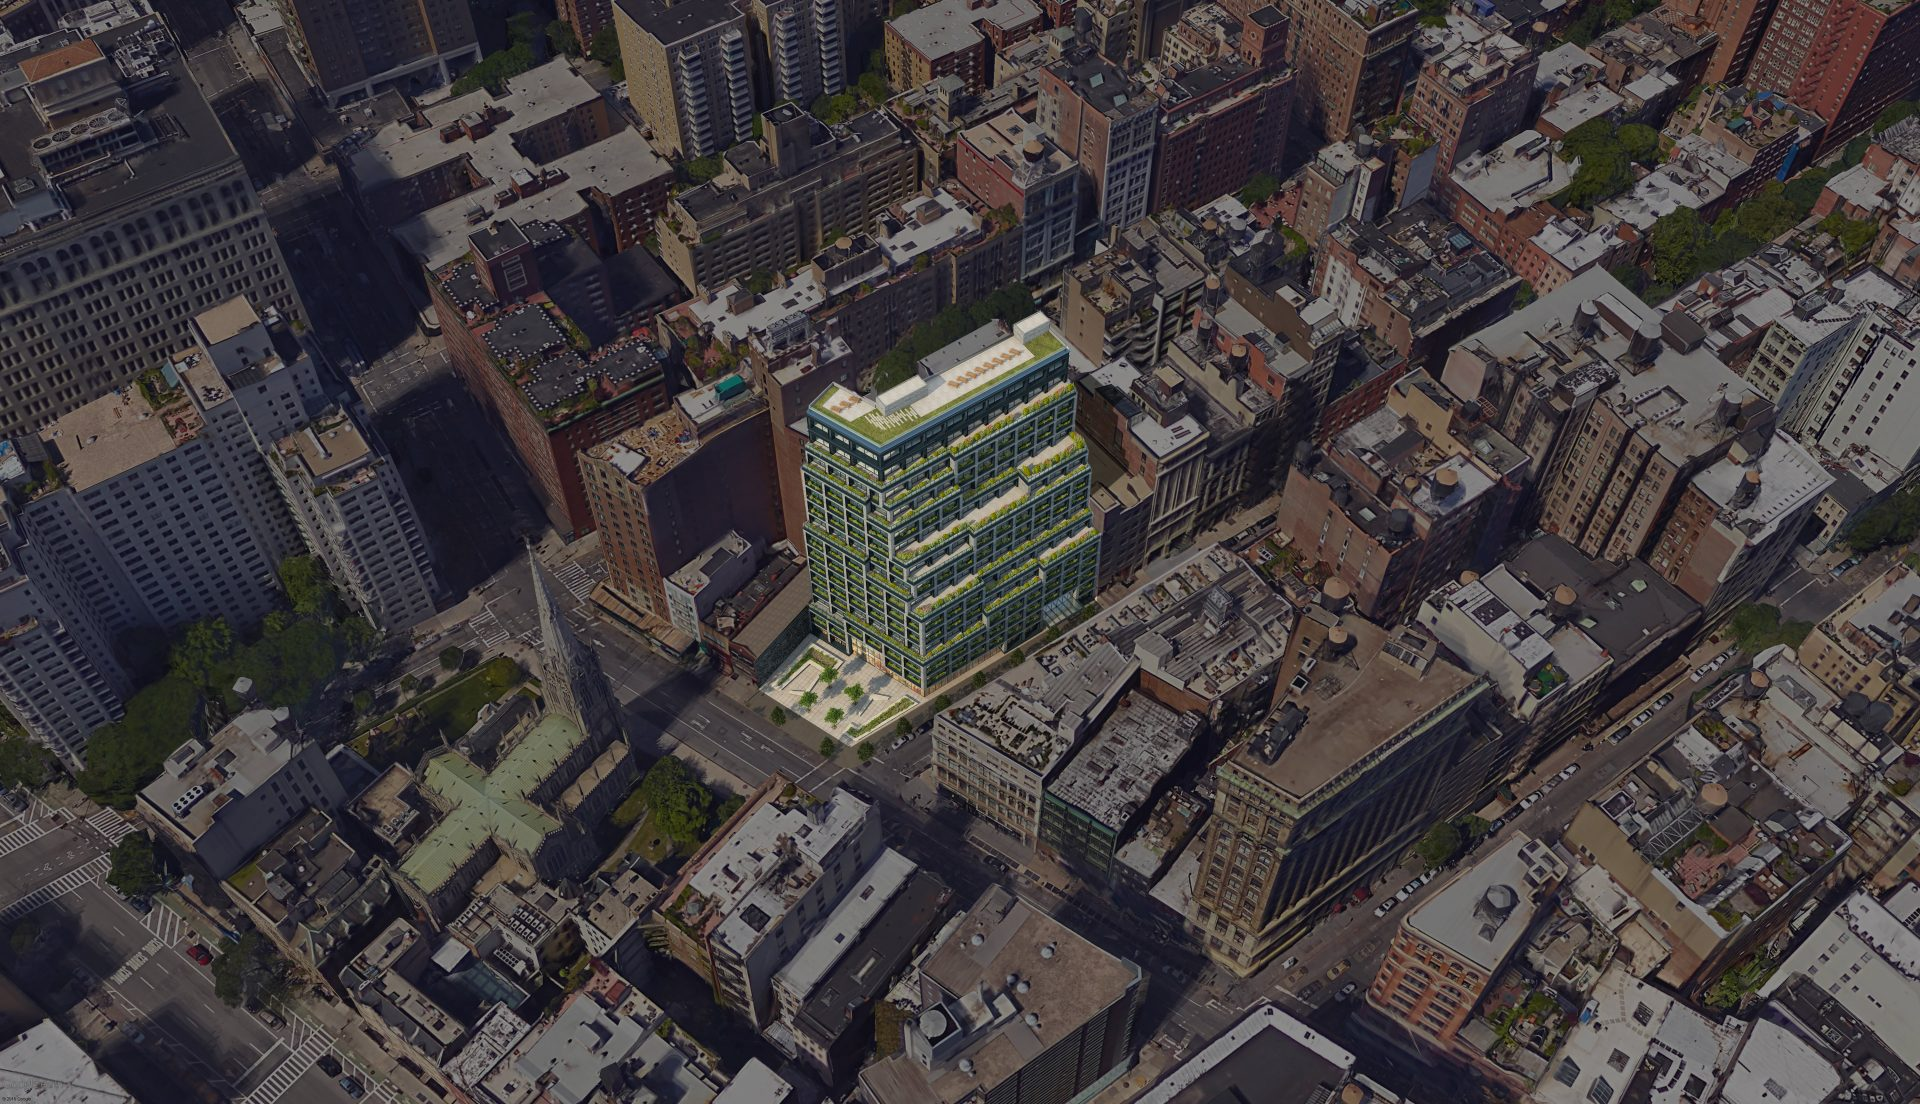 Aerial view with rendering of the proposed new development for the Silicon Alley office building